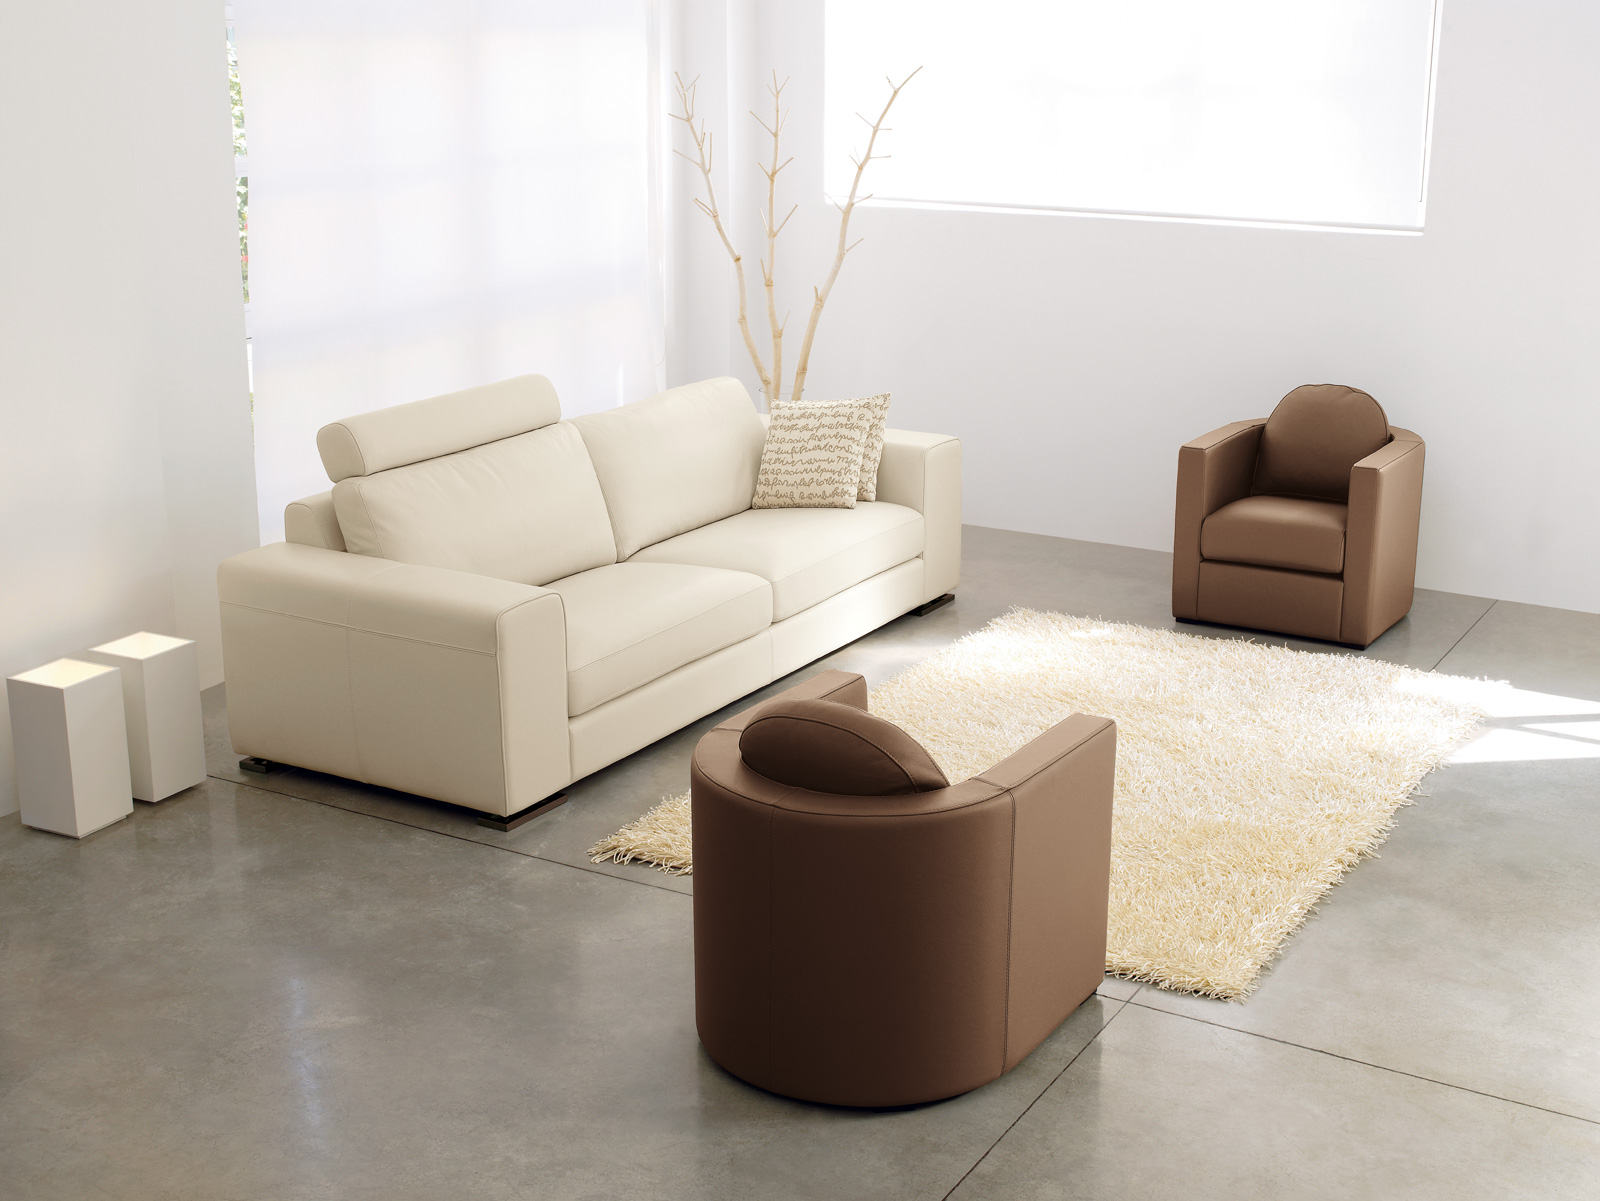 ergonomic chairs in brown and comfy white sofa with pillows white wool area  rug for living. Criterion of Comfortable Chairs for Living Room   HomesFeed